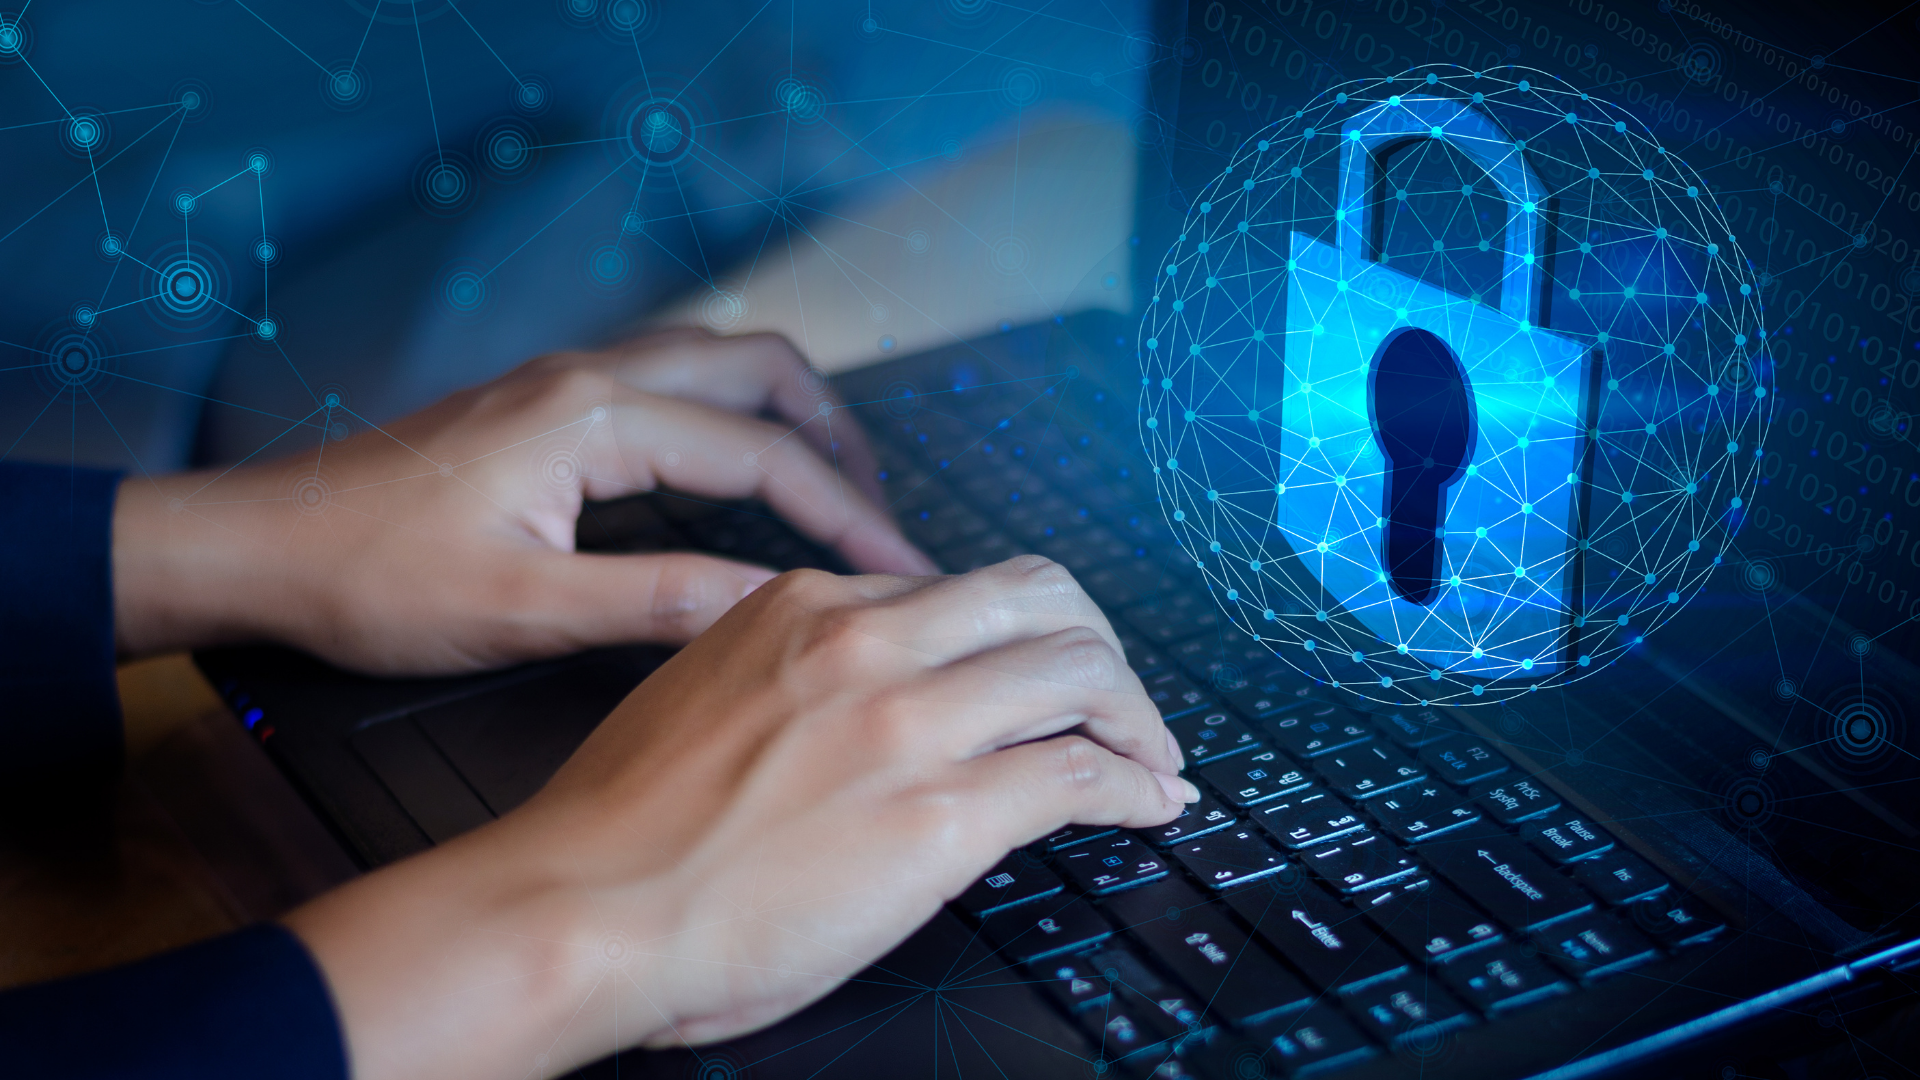 Telecom professional implementing cyber security on laptop